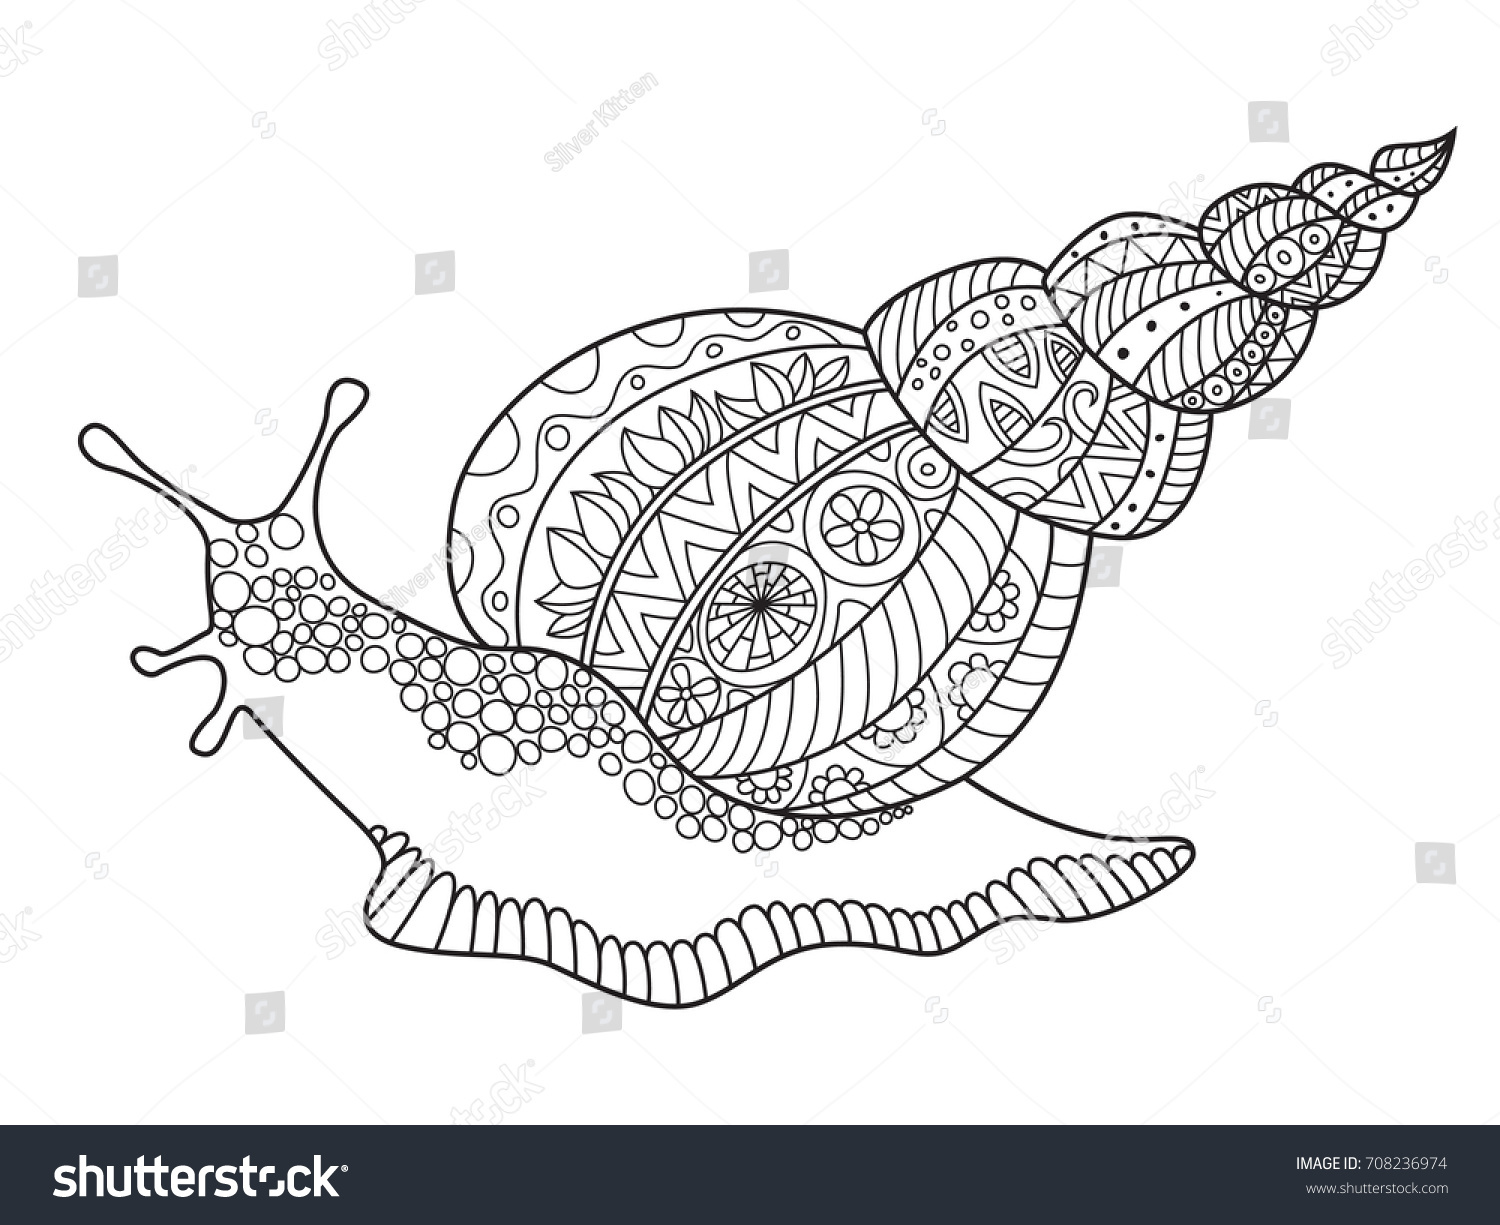 Outlined Doodle Antistress Coloring Giant Snail Stock Vector ...